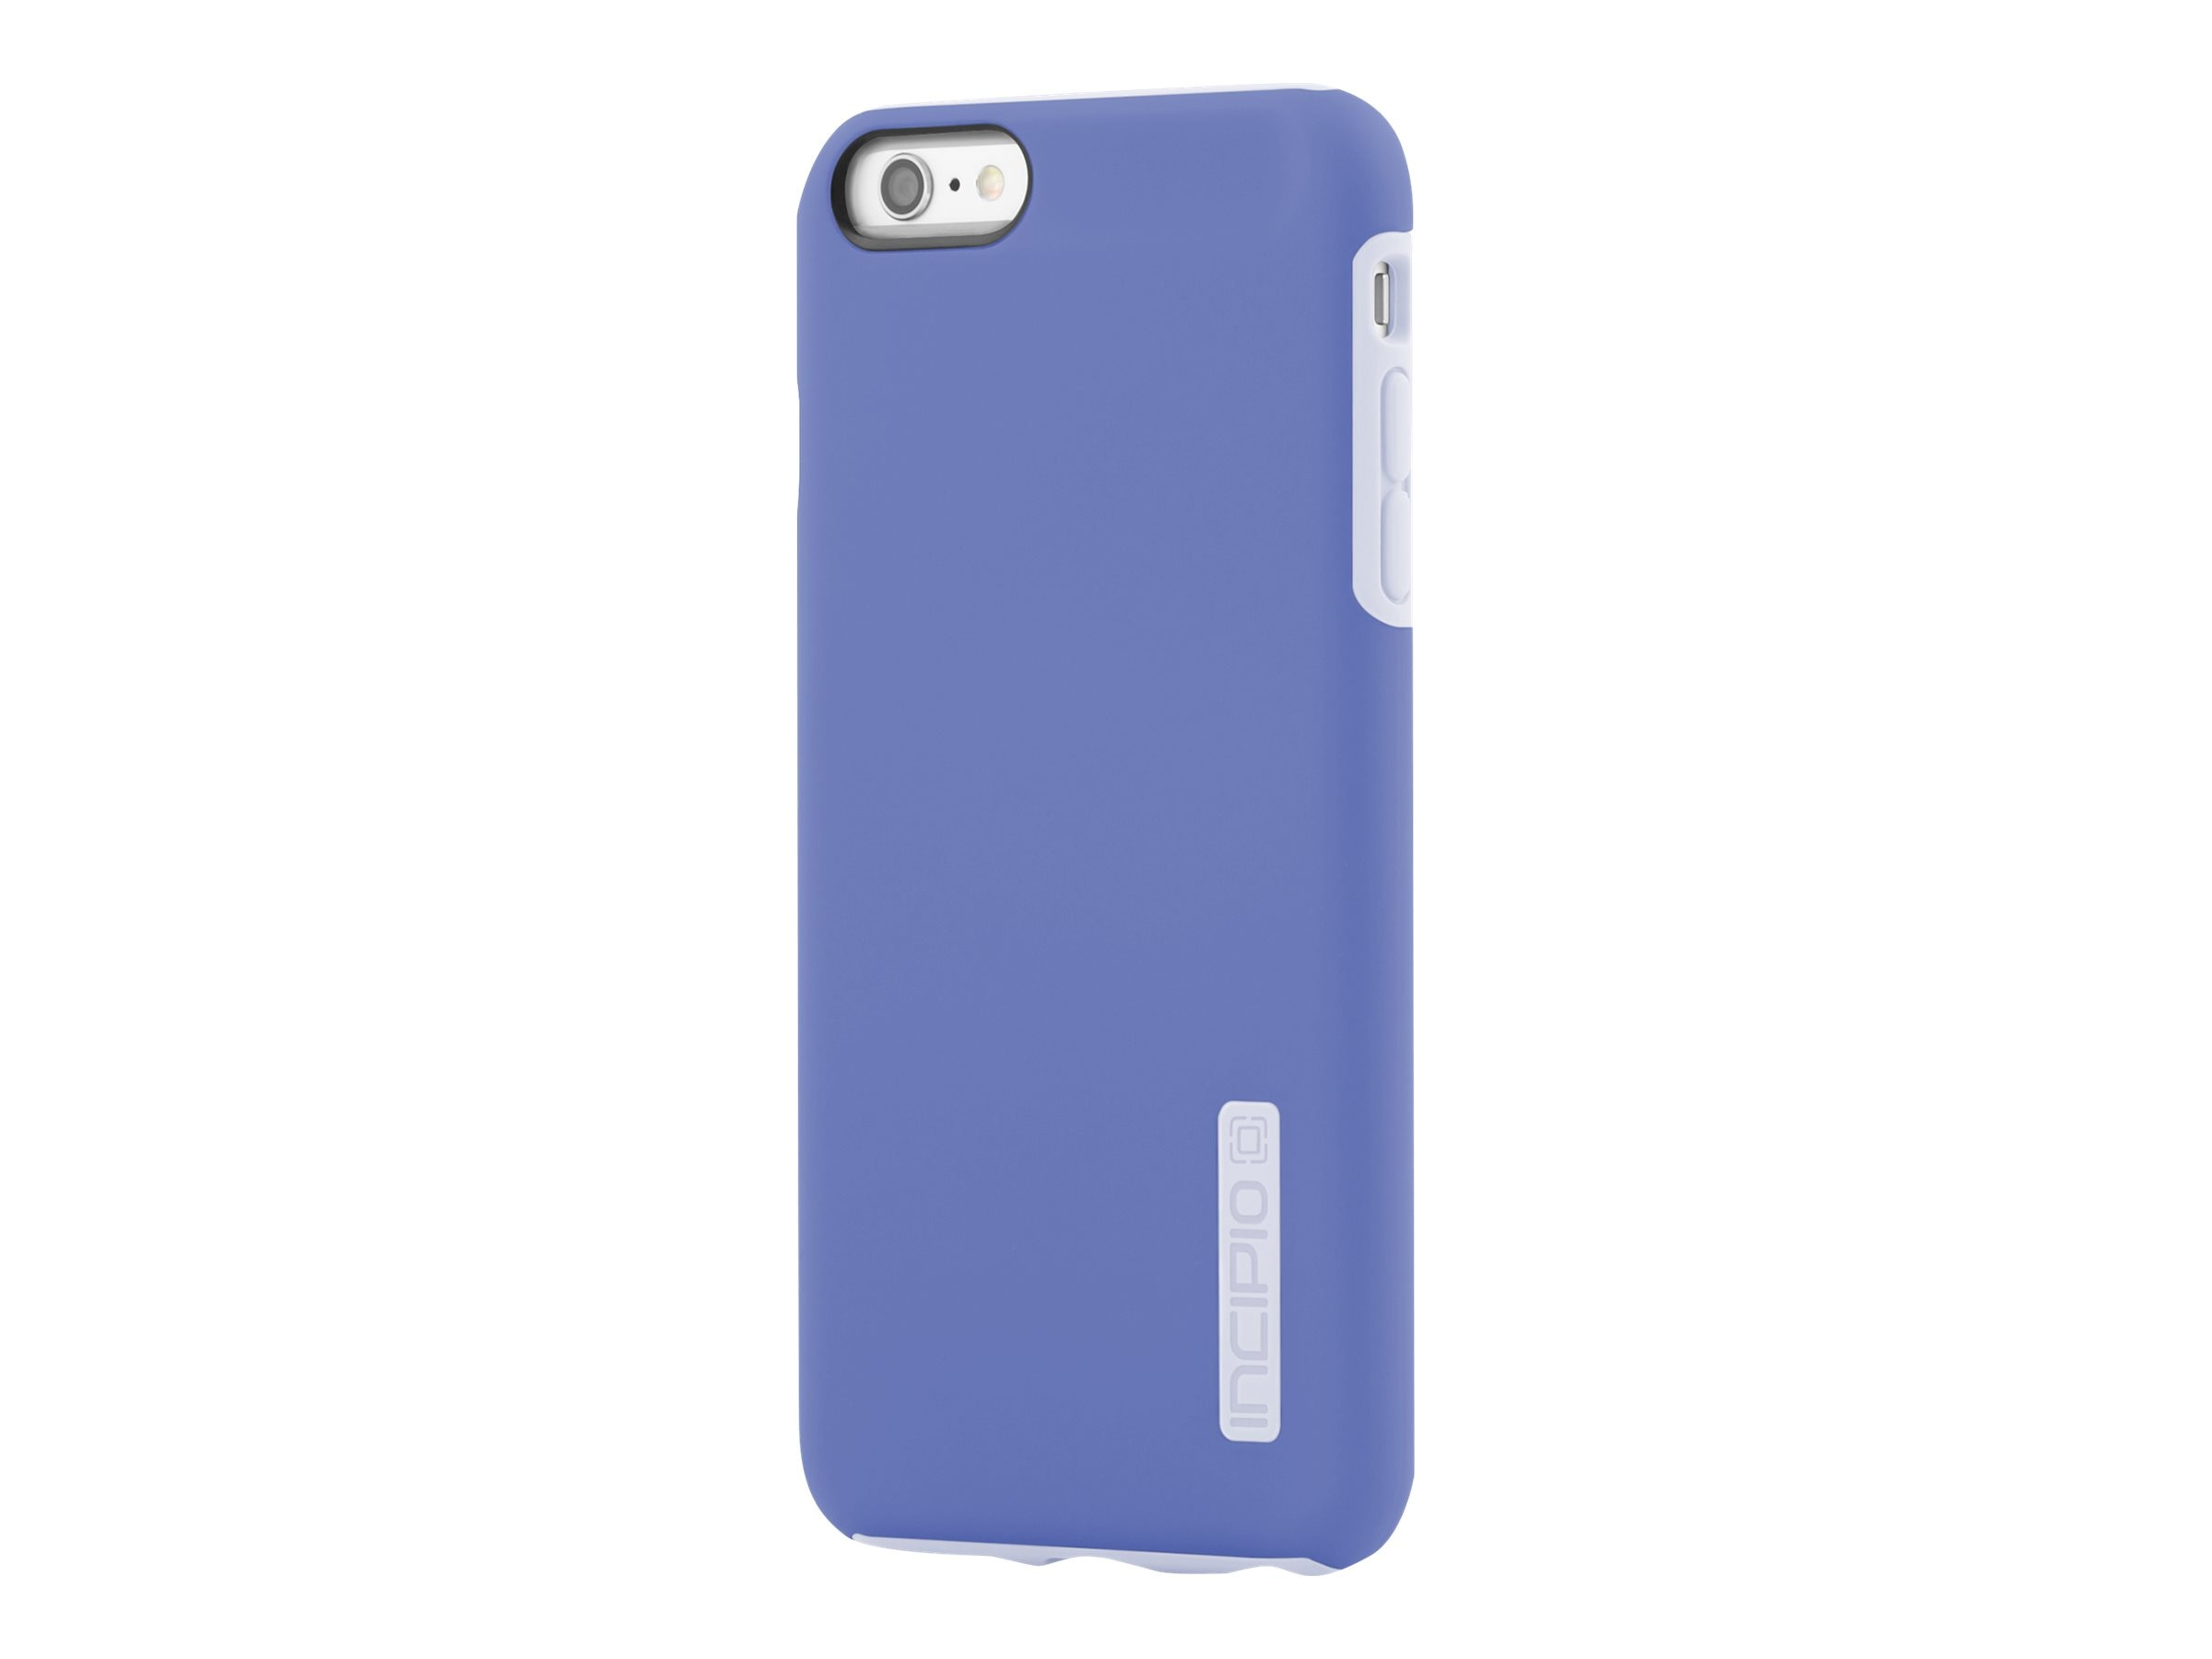 Incipio DualPro Hard Shell Case w  Impact Absorbing Core for iPhone 6 6S Plus, Periwinkle Haze Blue, IPH-1195-PERBLU